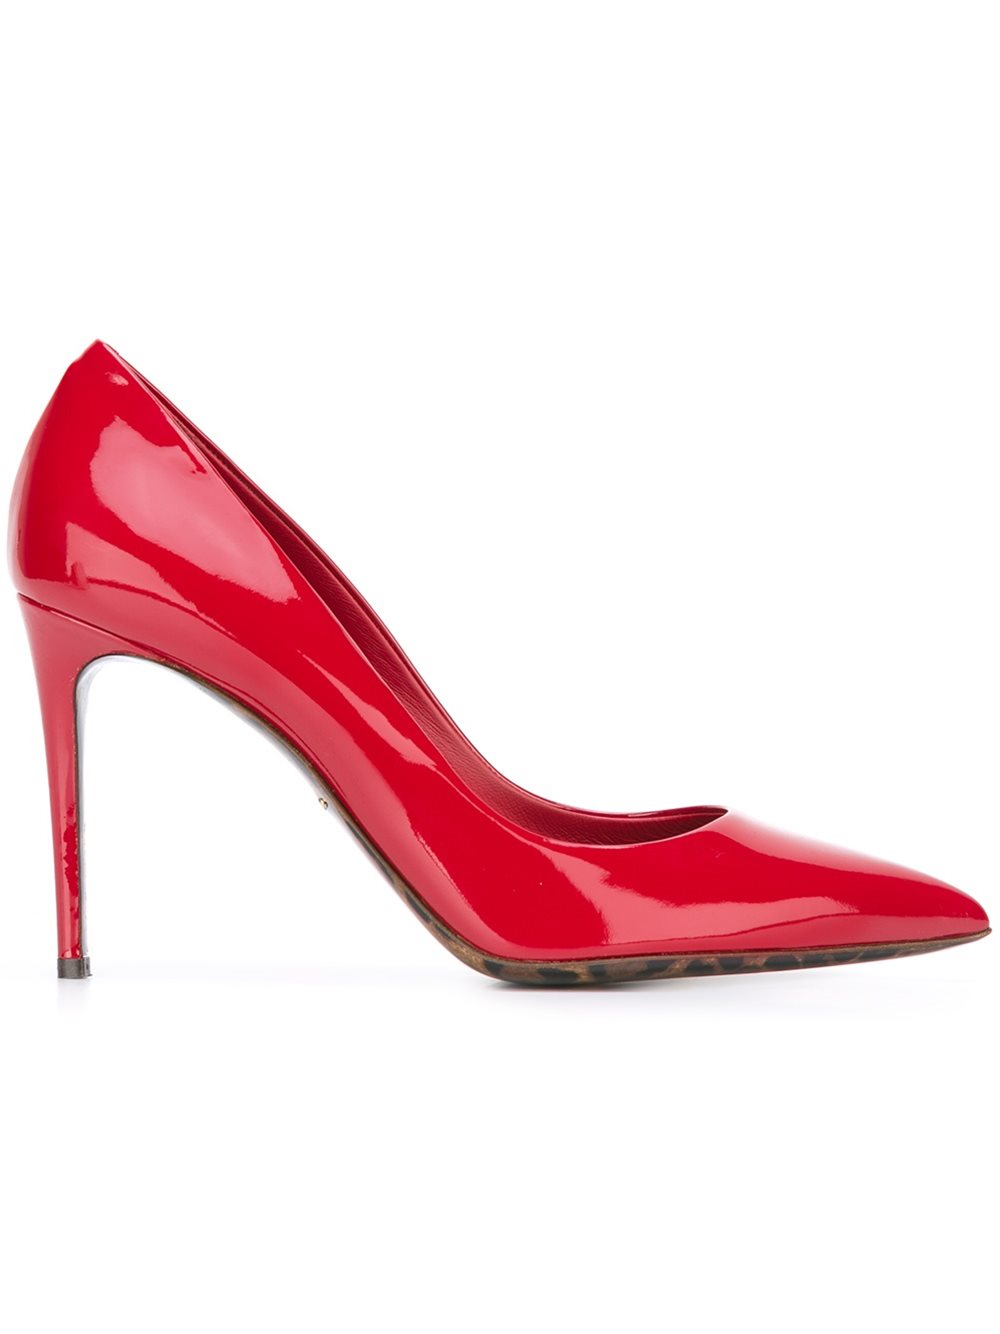 Dolce & Gabbana Kate pumps, FarFetch.com